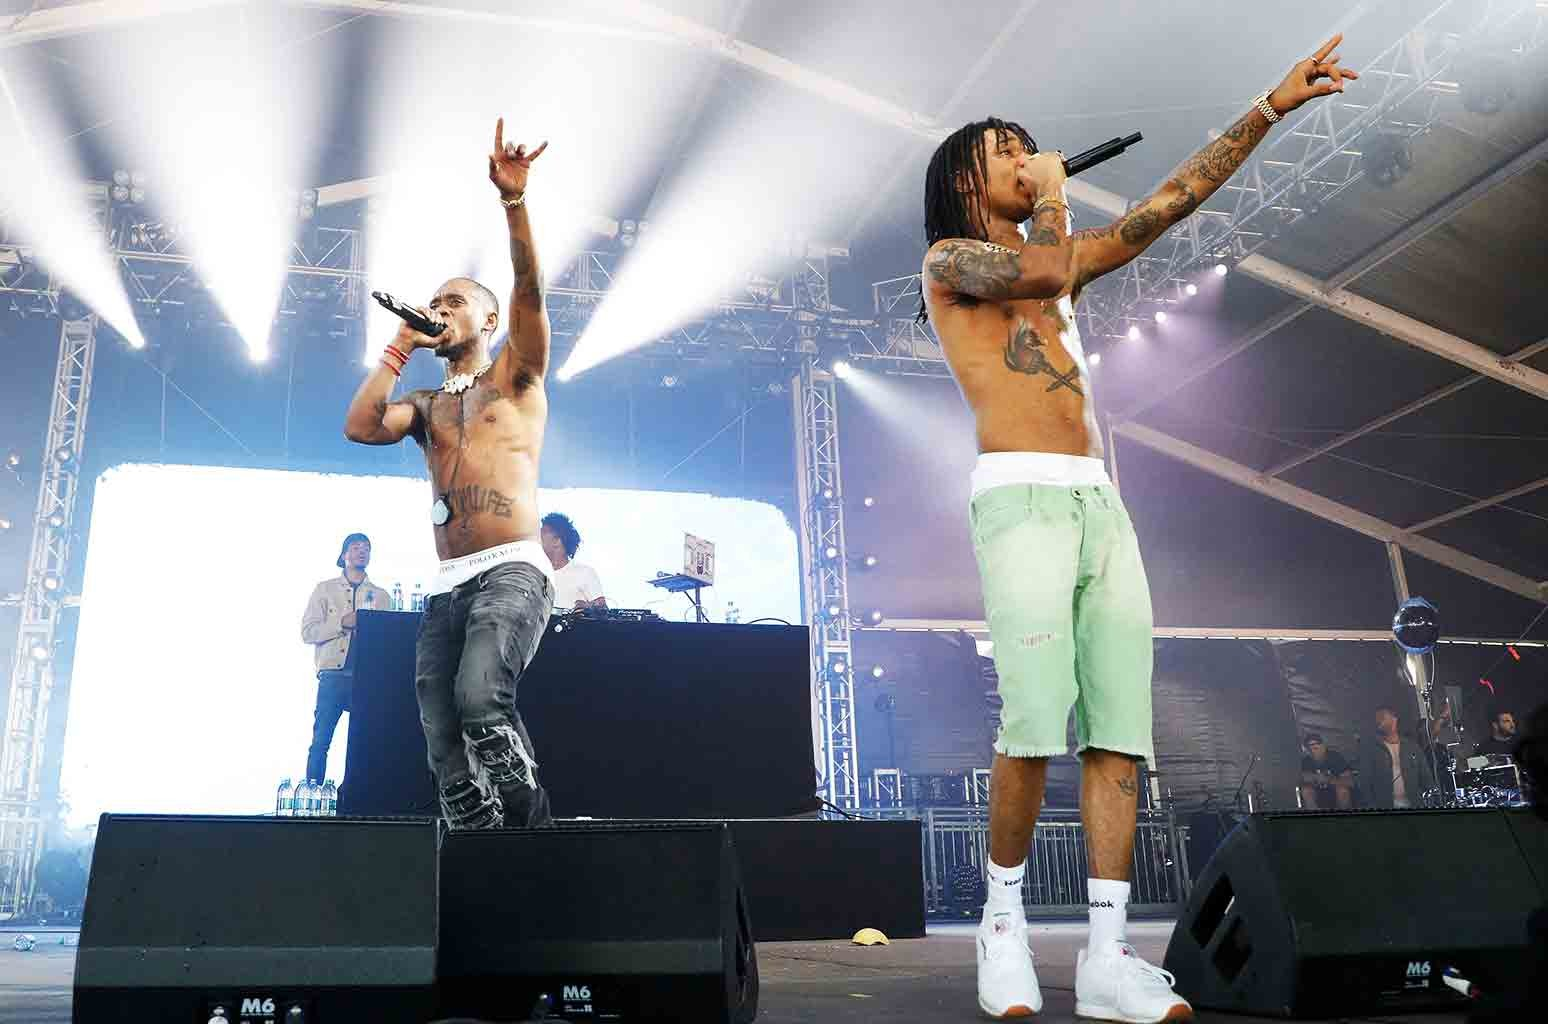 Swae Lee and Slim Jxmm of Rae Sremmurd perform live onstage during 2017 Governors Ball Music Festival - Day 2 at Randall's Island on June 3, 2017 in New York City.